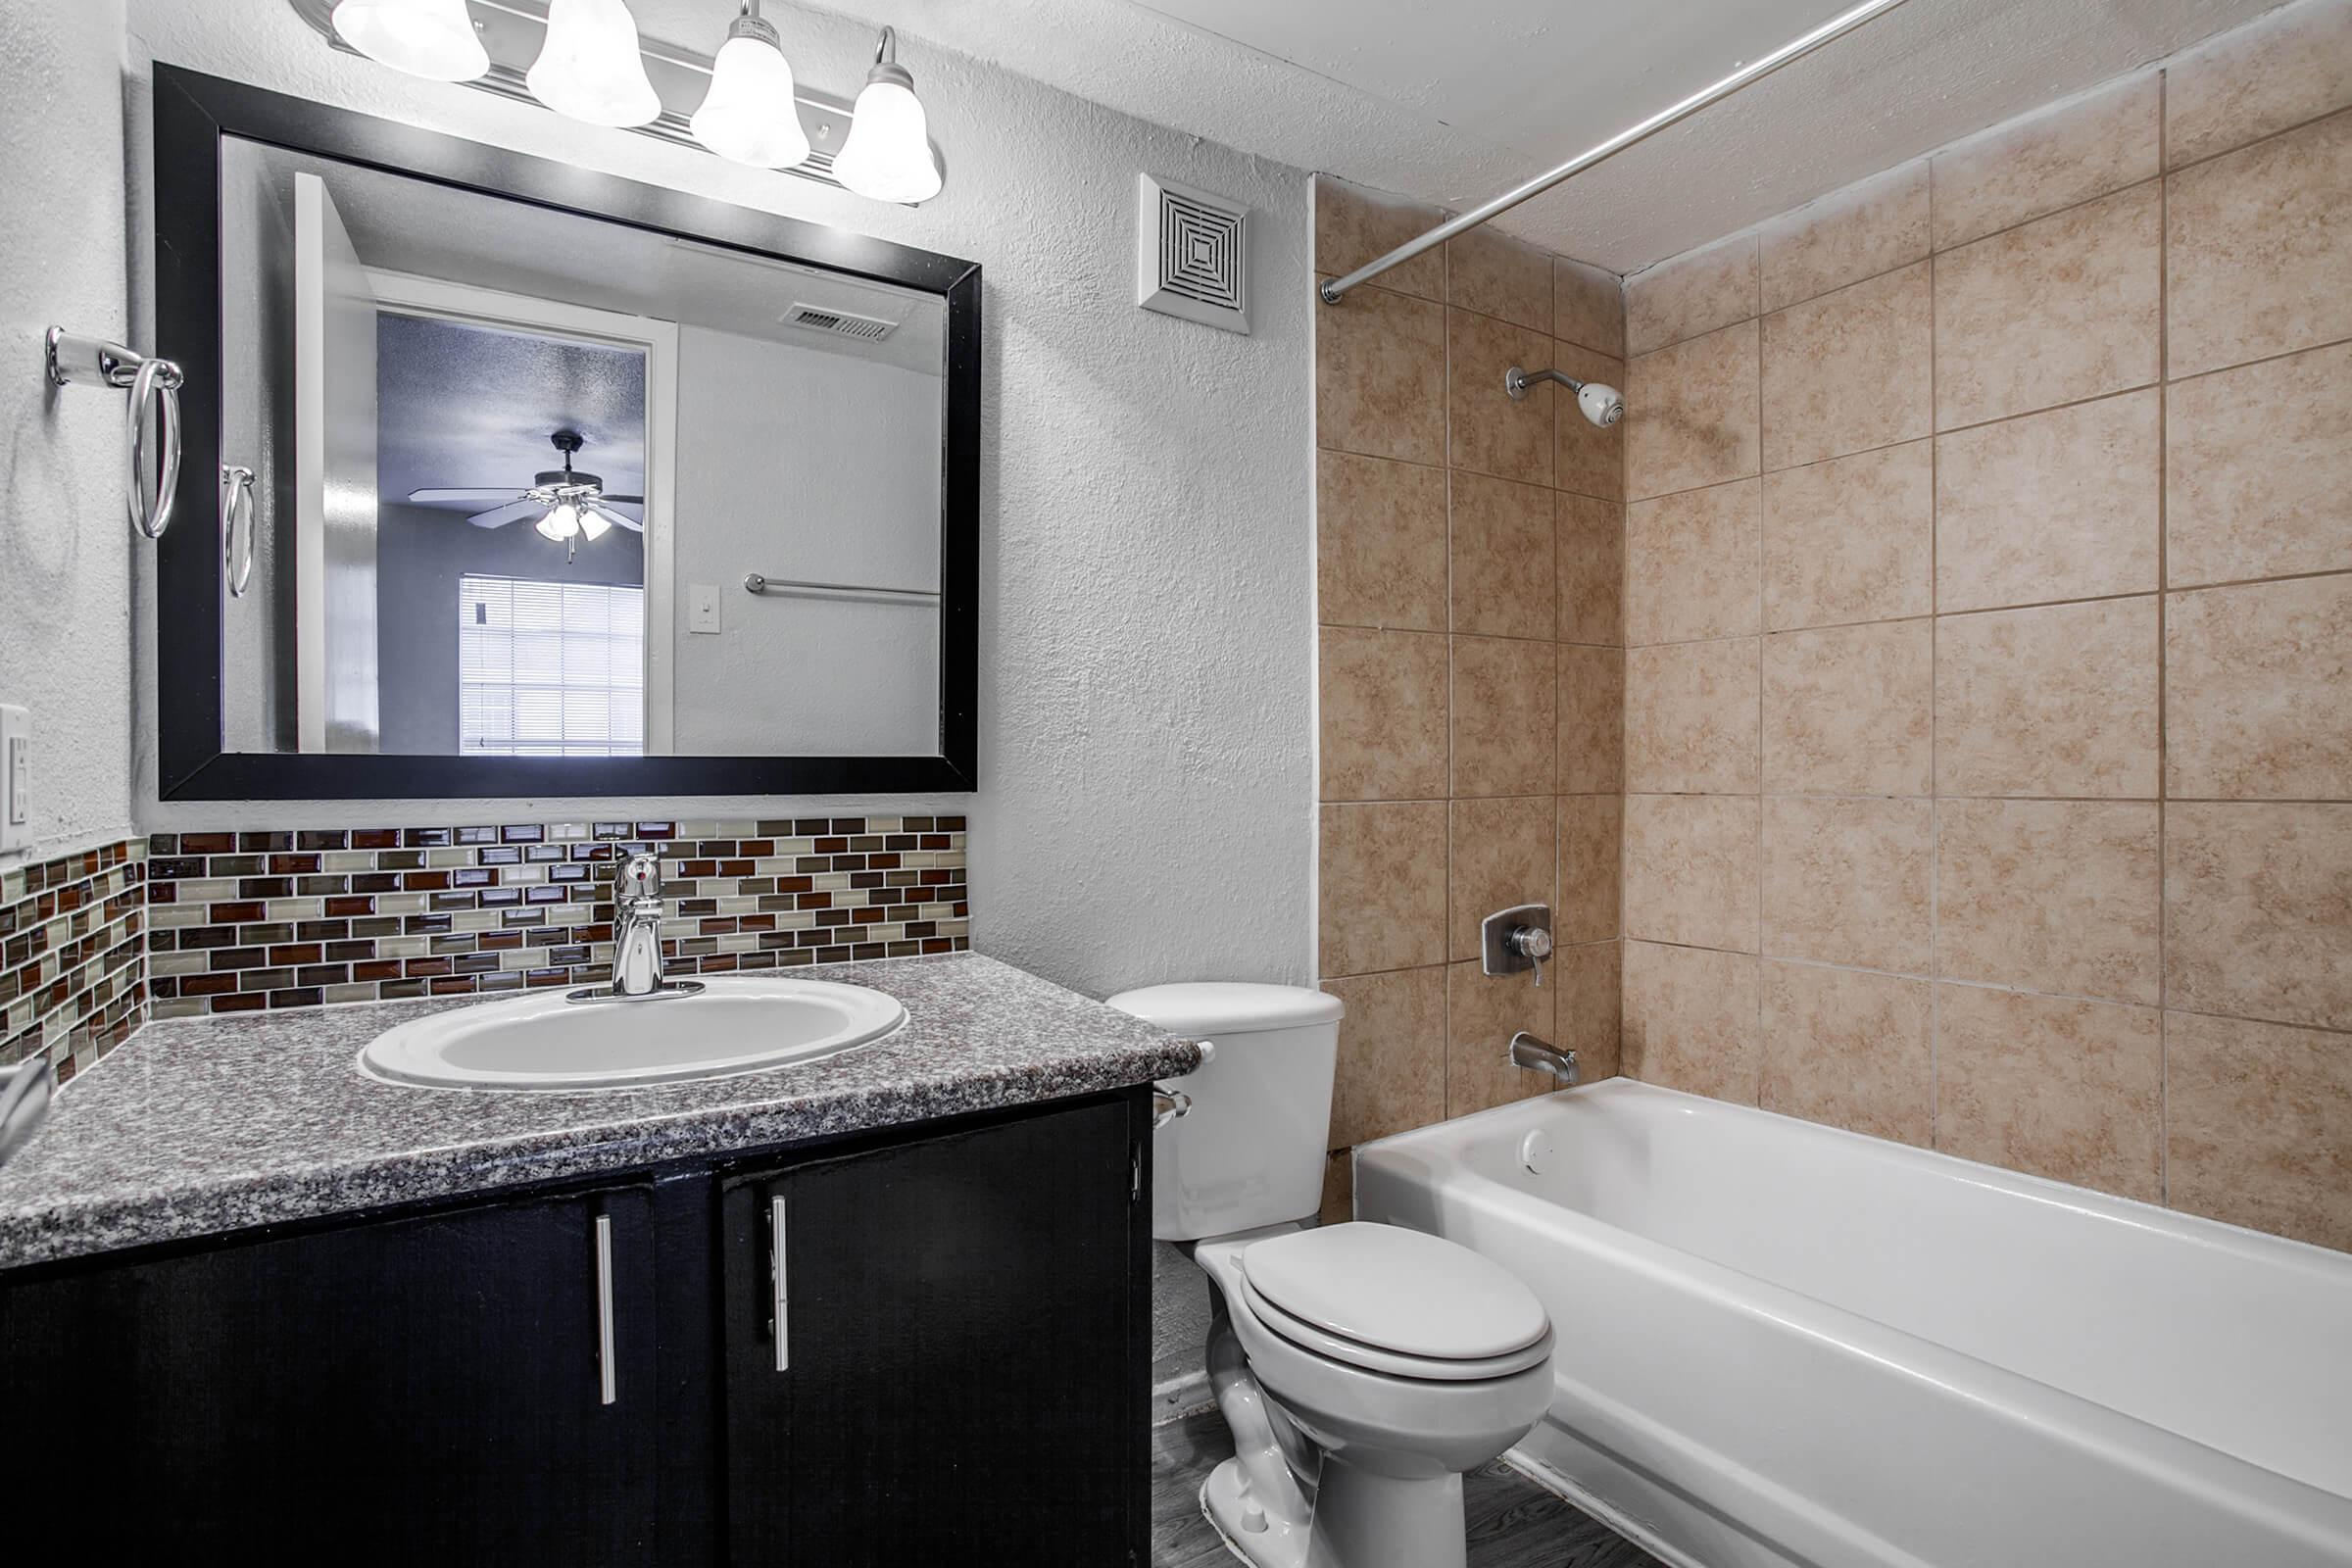 a room with a large tub next to a sink